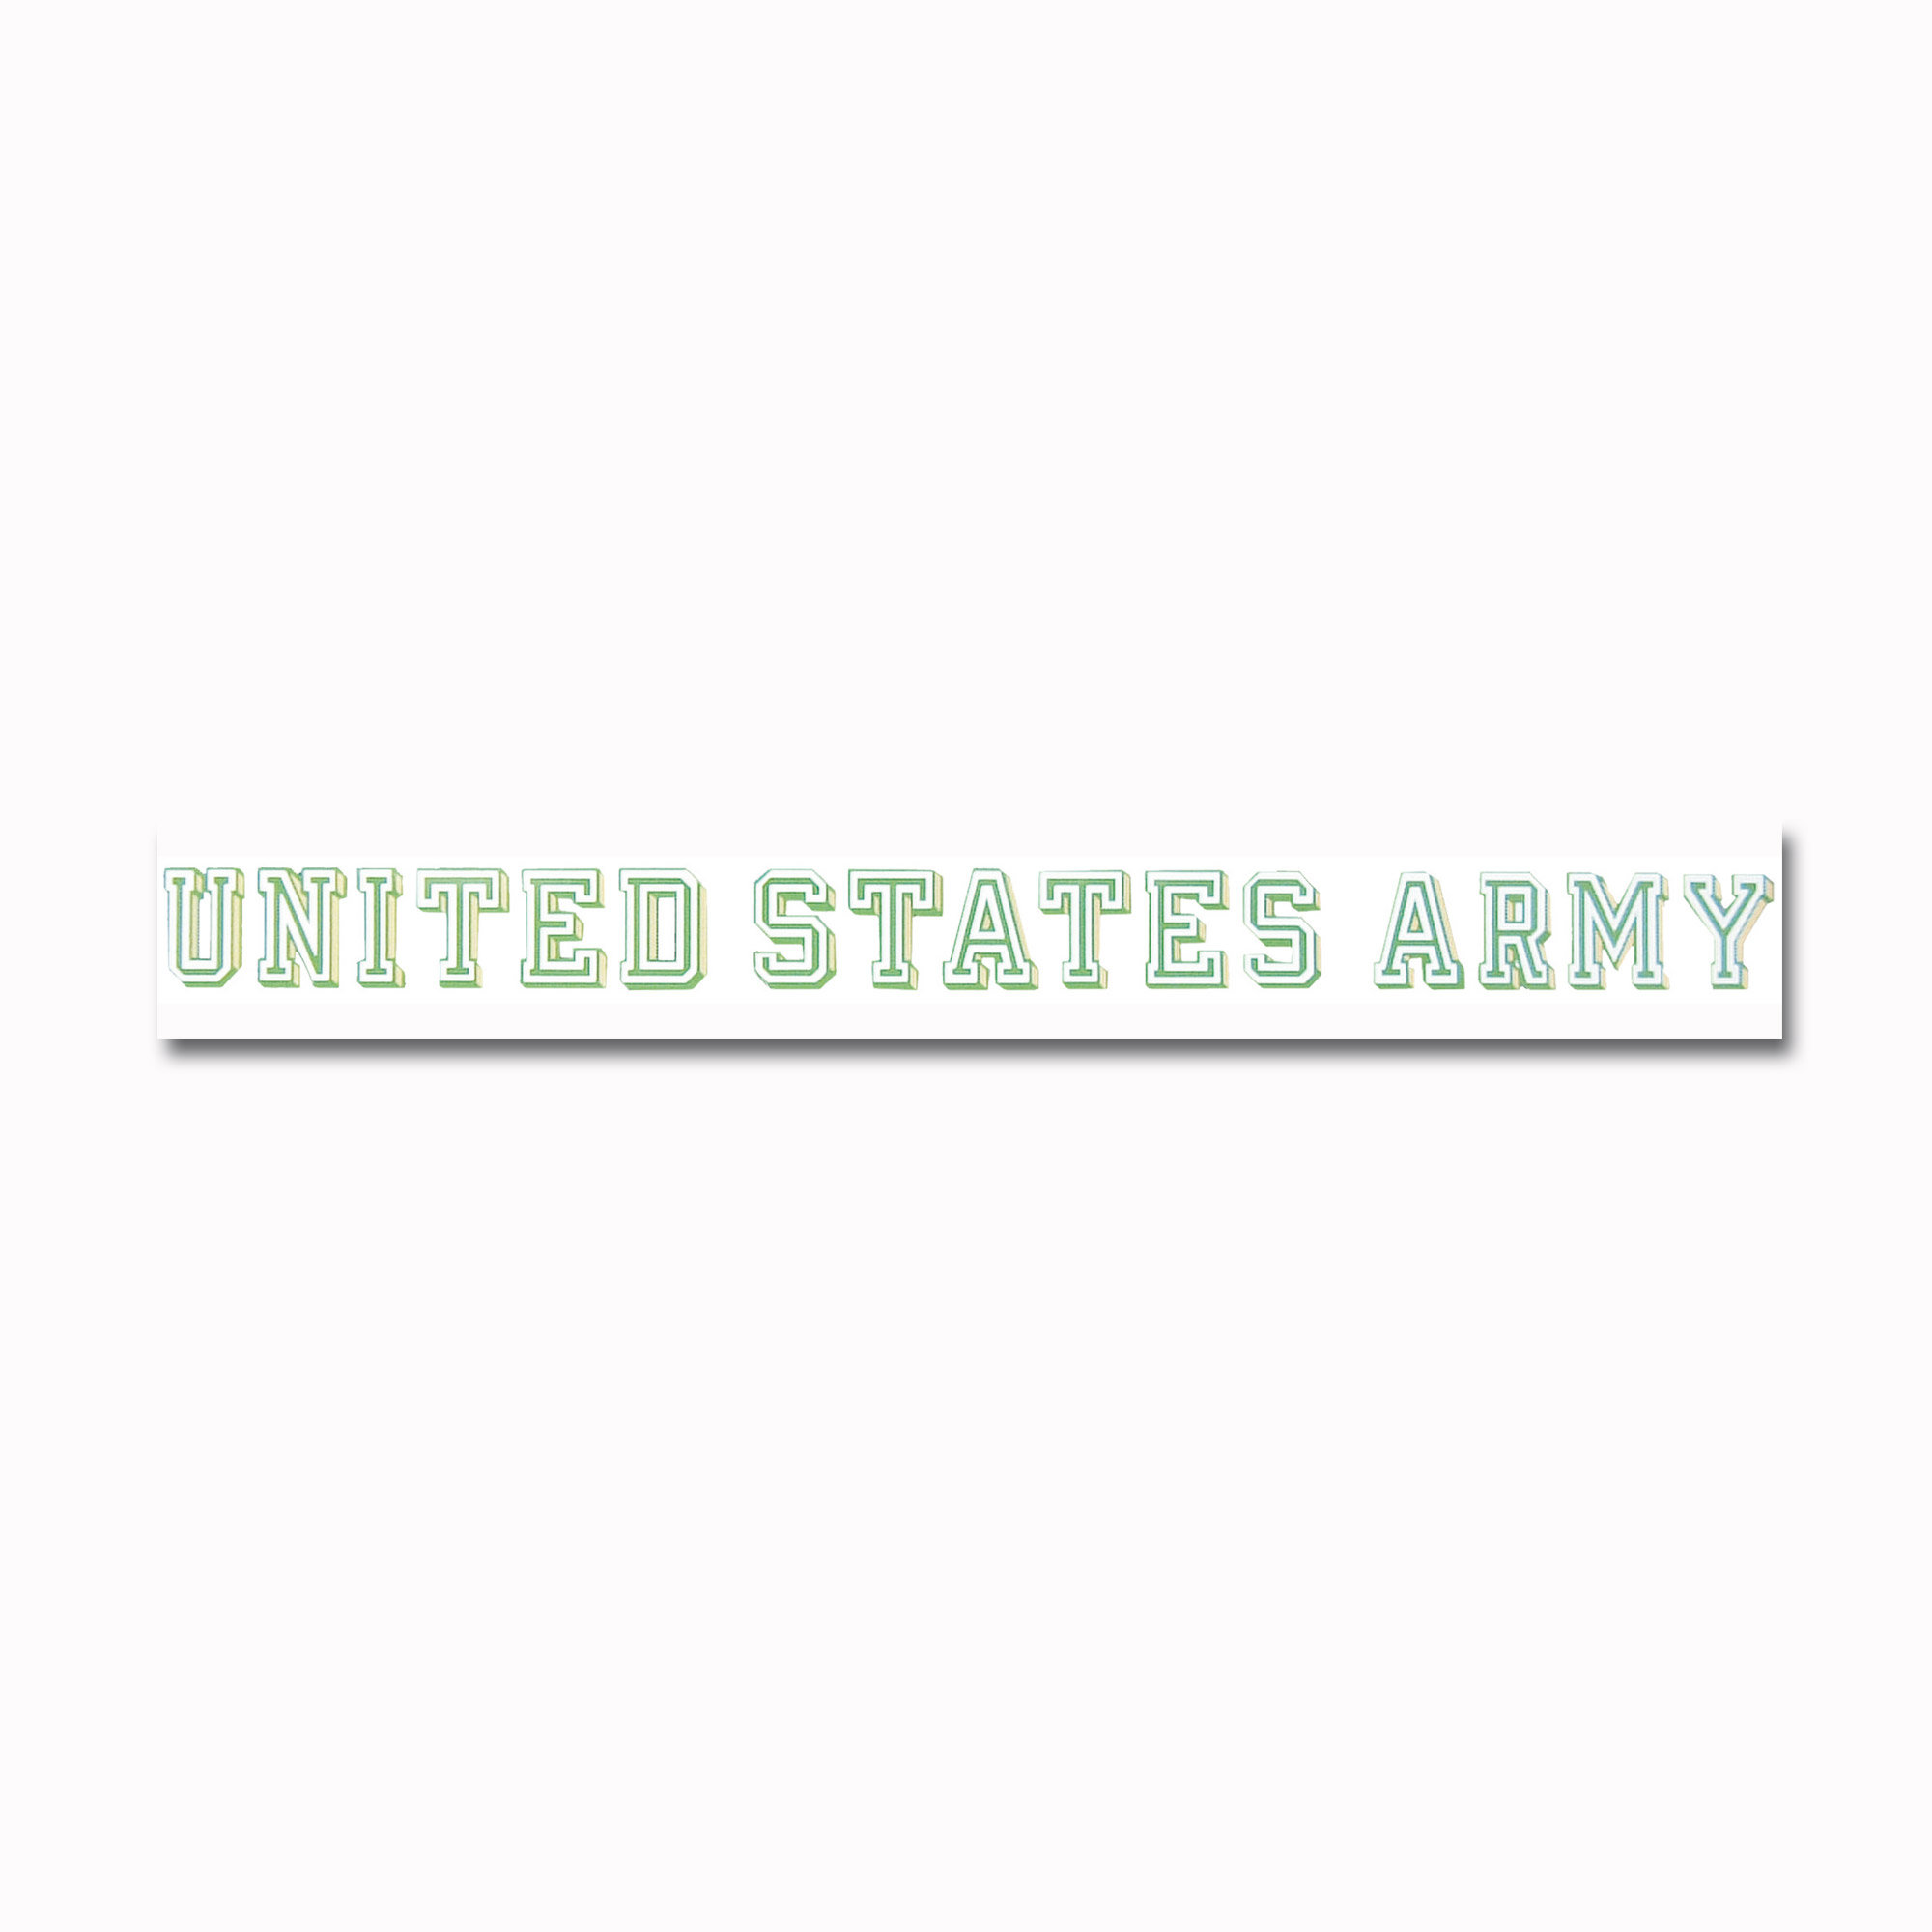 Window decal UNITED STATES ARMY